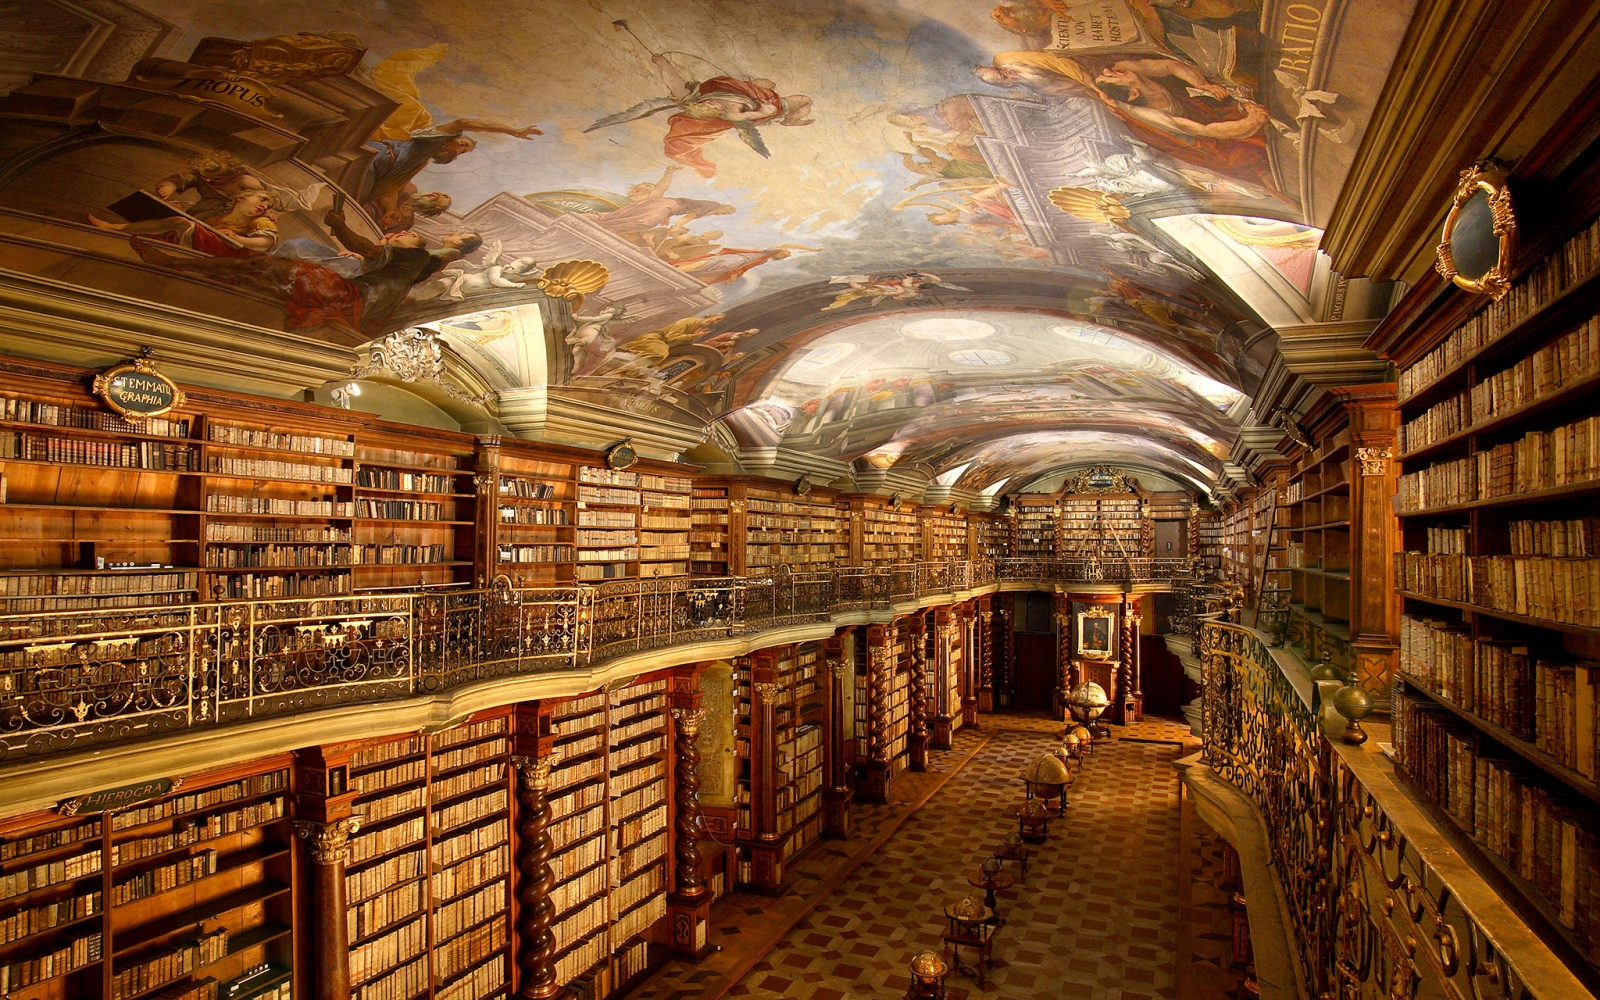 20 Libraries So Beautiful They'll Bring Out the Bookworm in Everyone